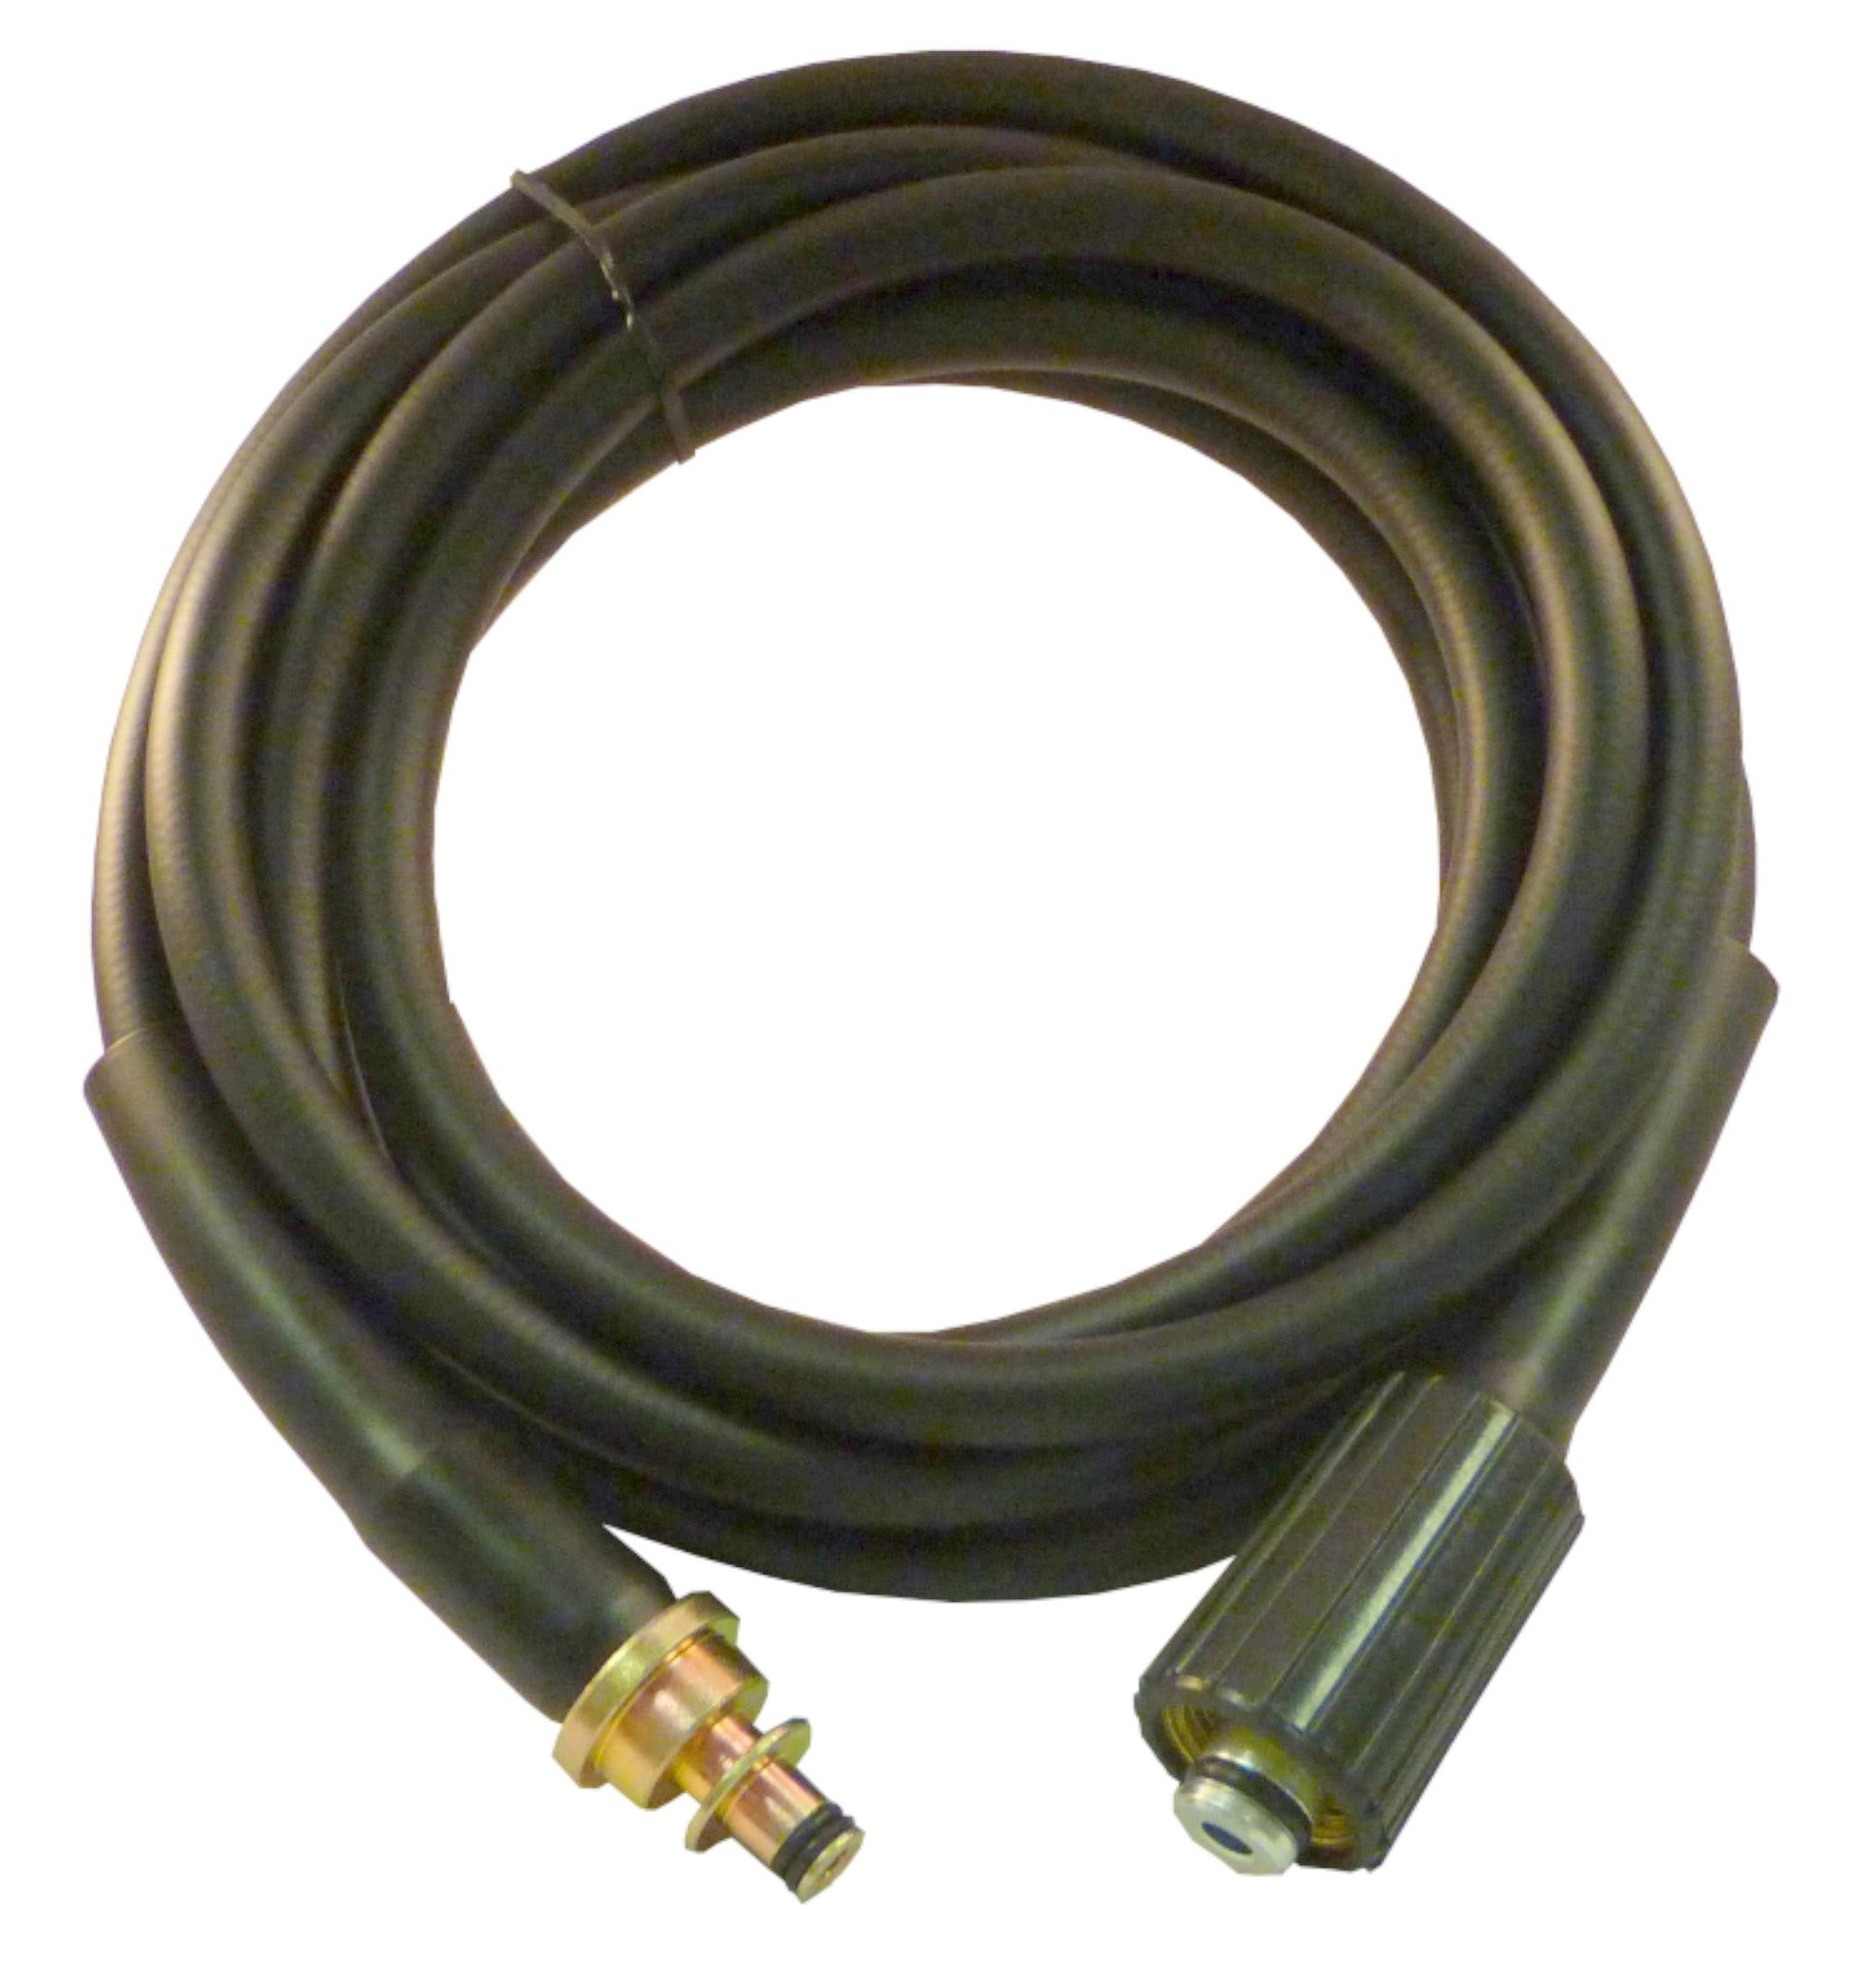 Karcher style replacement Hose for Black 'C' Clip Trigger